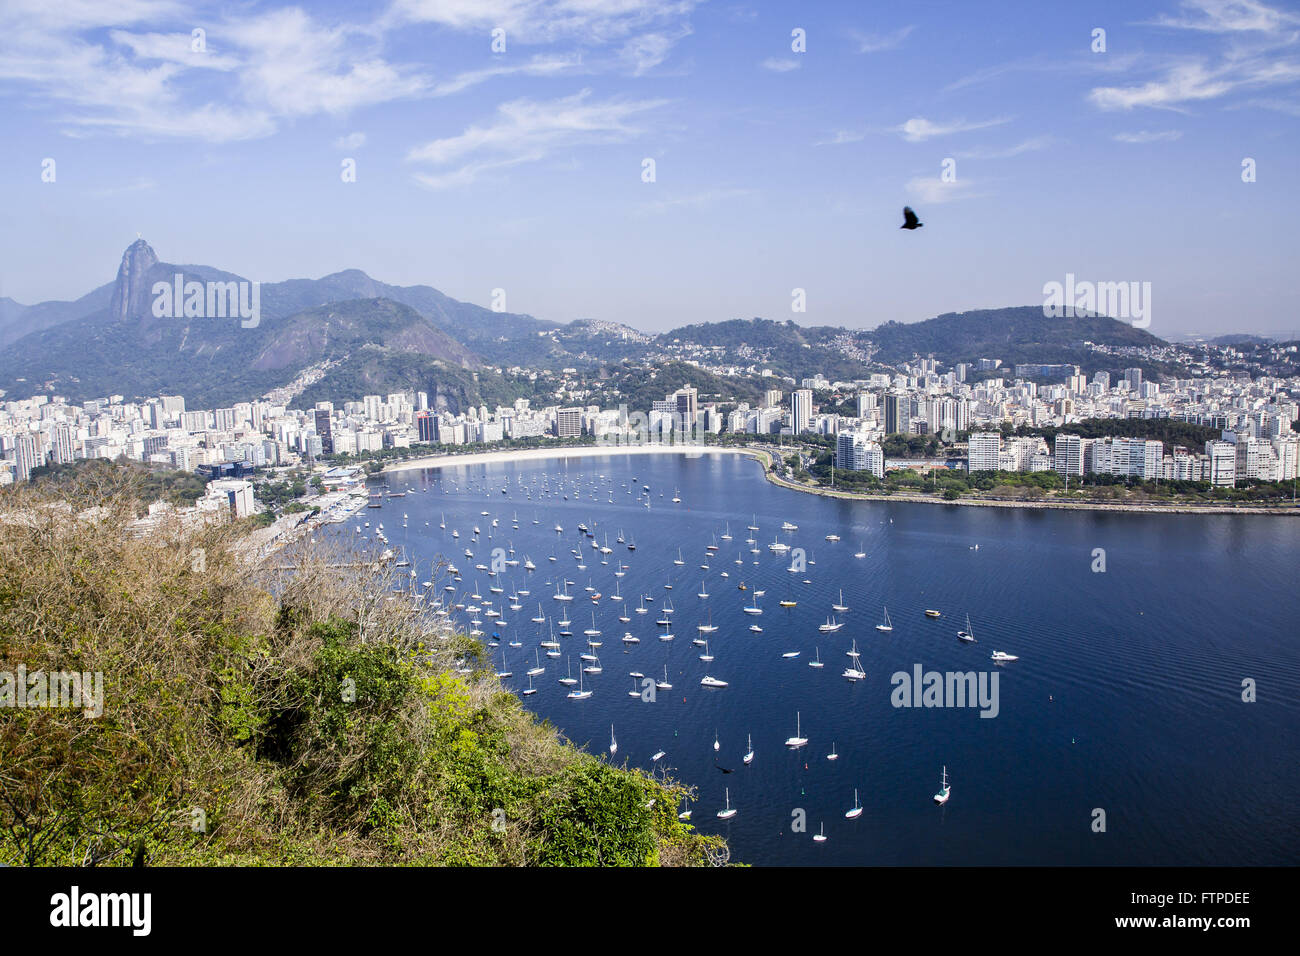 View of Botafogo Bay with the Corcovado Mountain in the background from the Morro da Urca Stock Photo